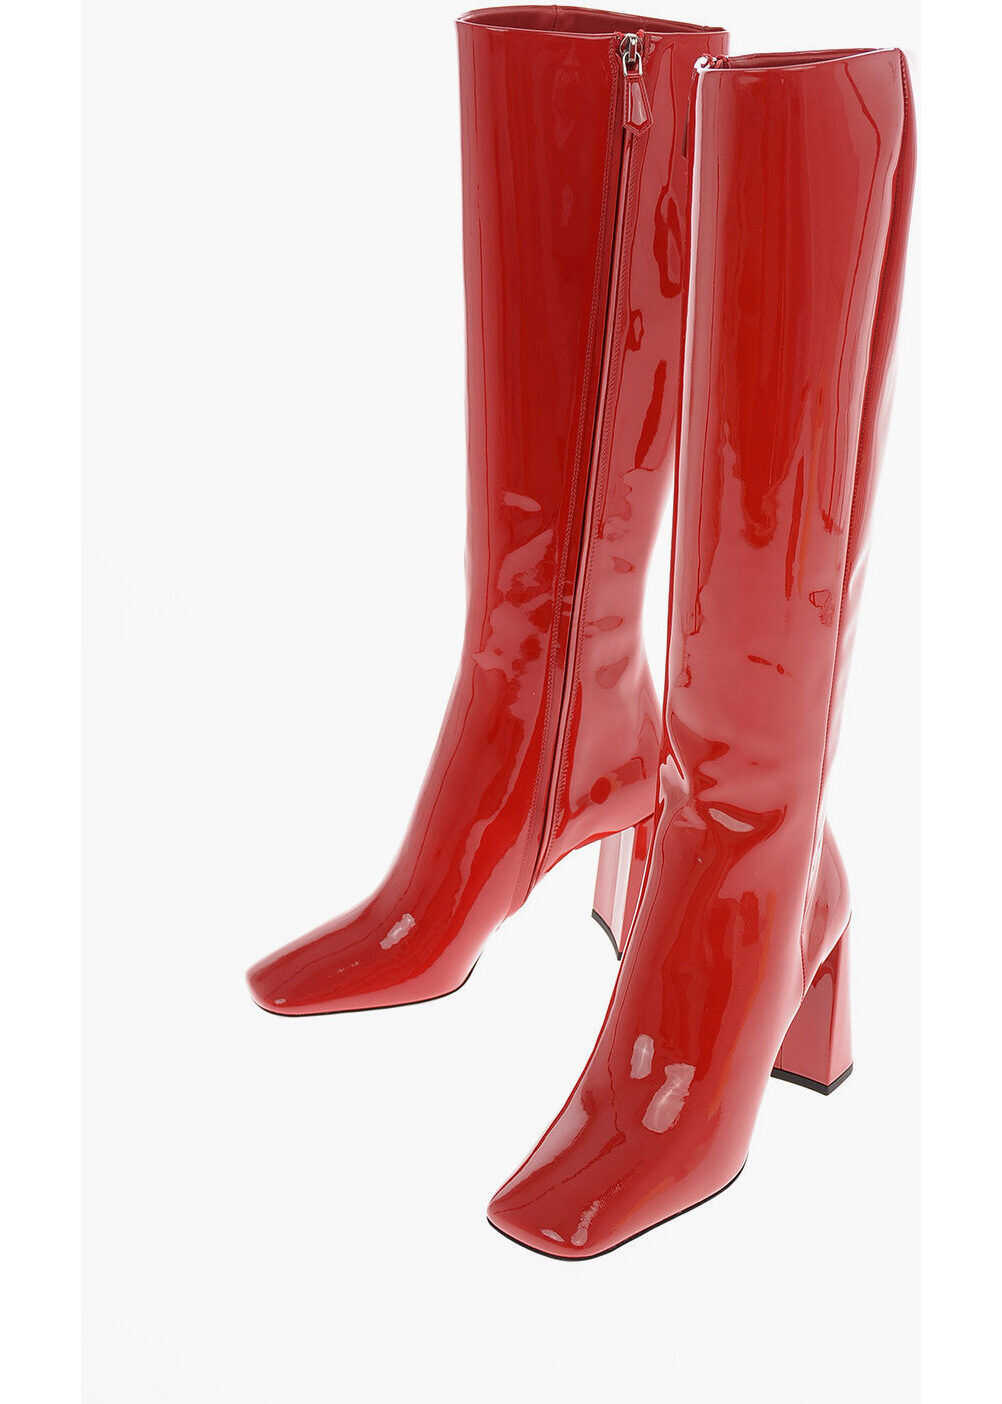 Prada Lacquered Leather Knee Length Boots 9 cm RED imagine b-mall.ro